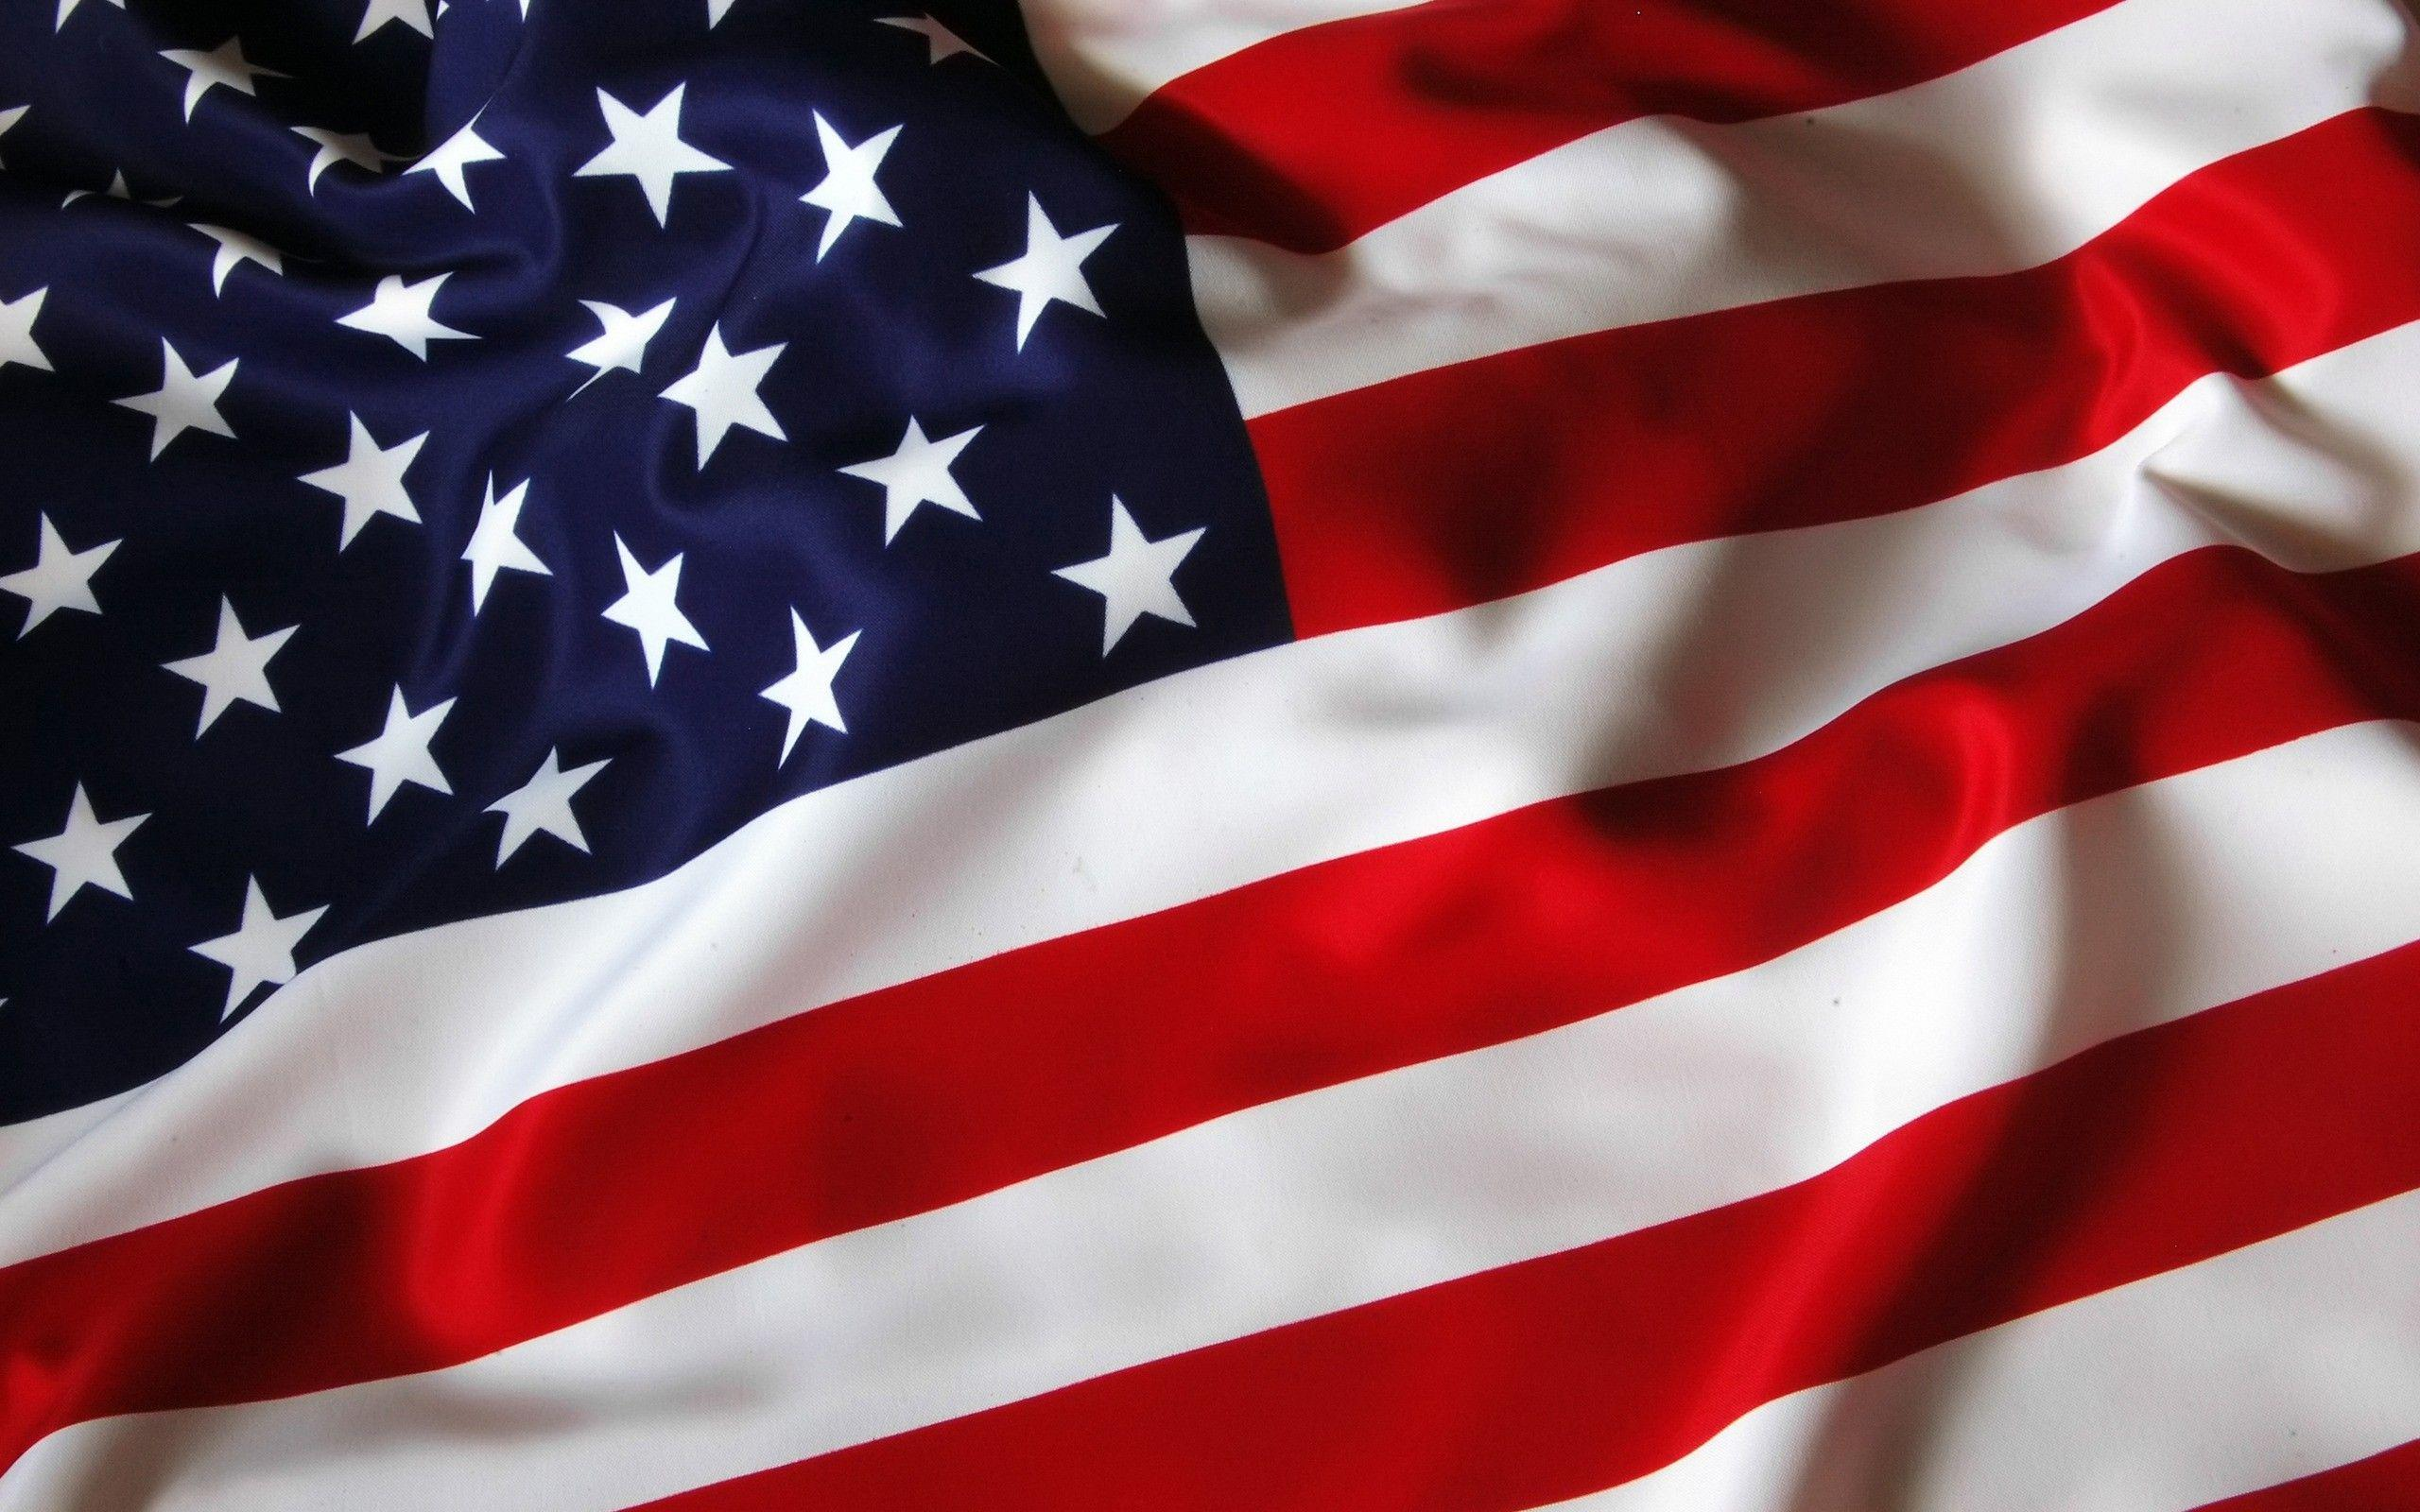 USA Flag Backgrounds - Wallpaper Cave